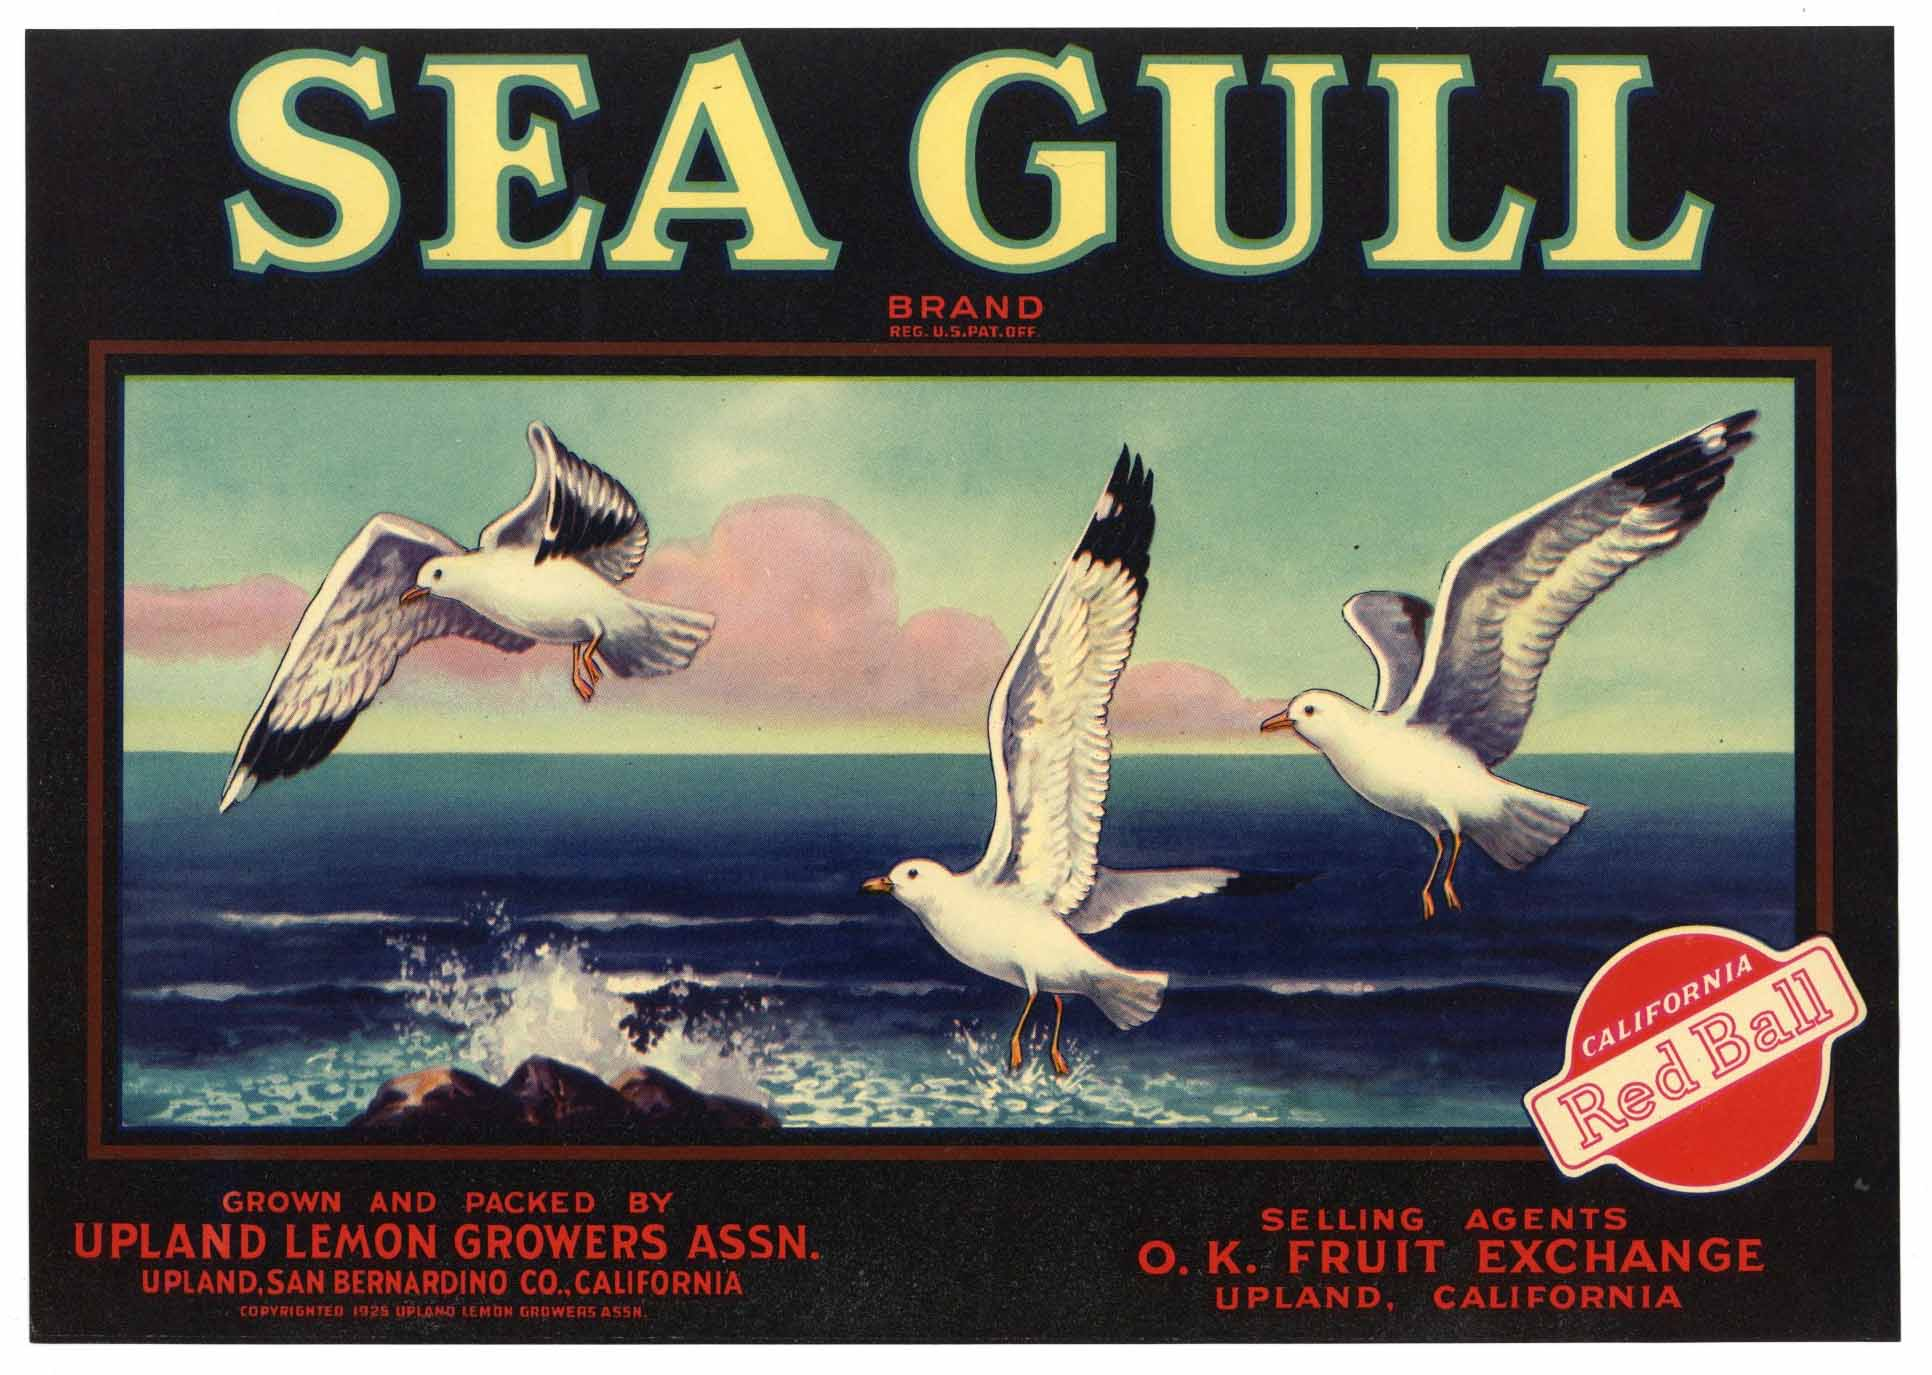 Sea Gull Brand Vintage Upland California Lemon Crate Label